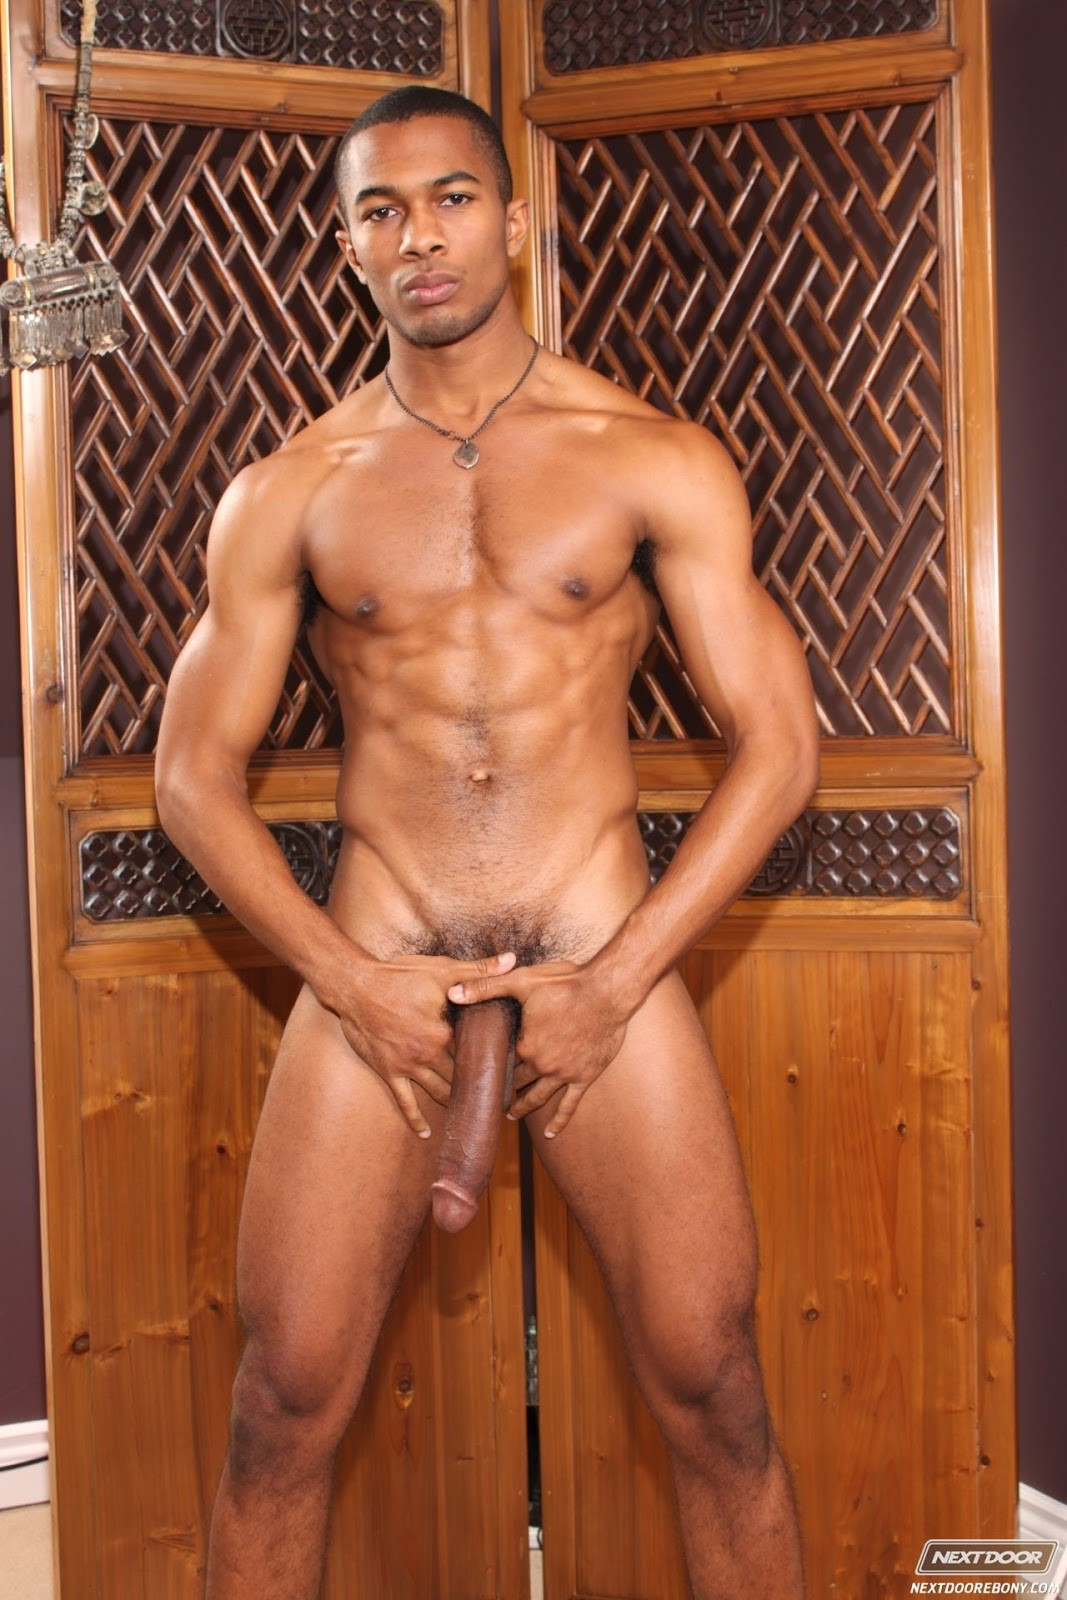 Jordi fucking black big dick images was hot...that